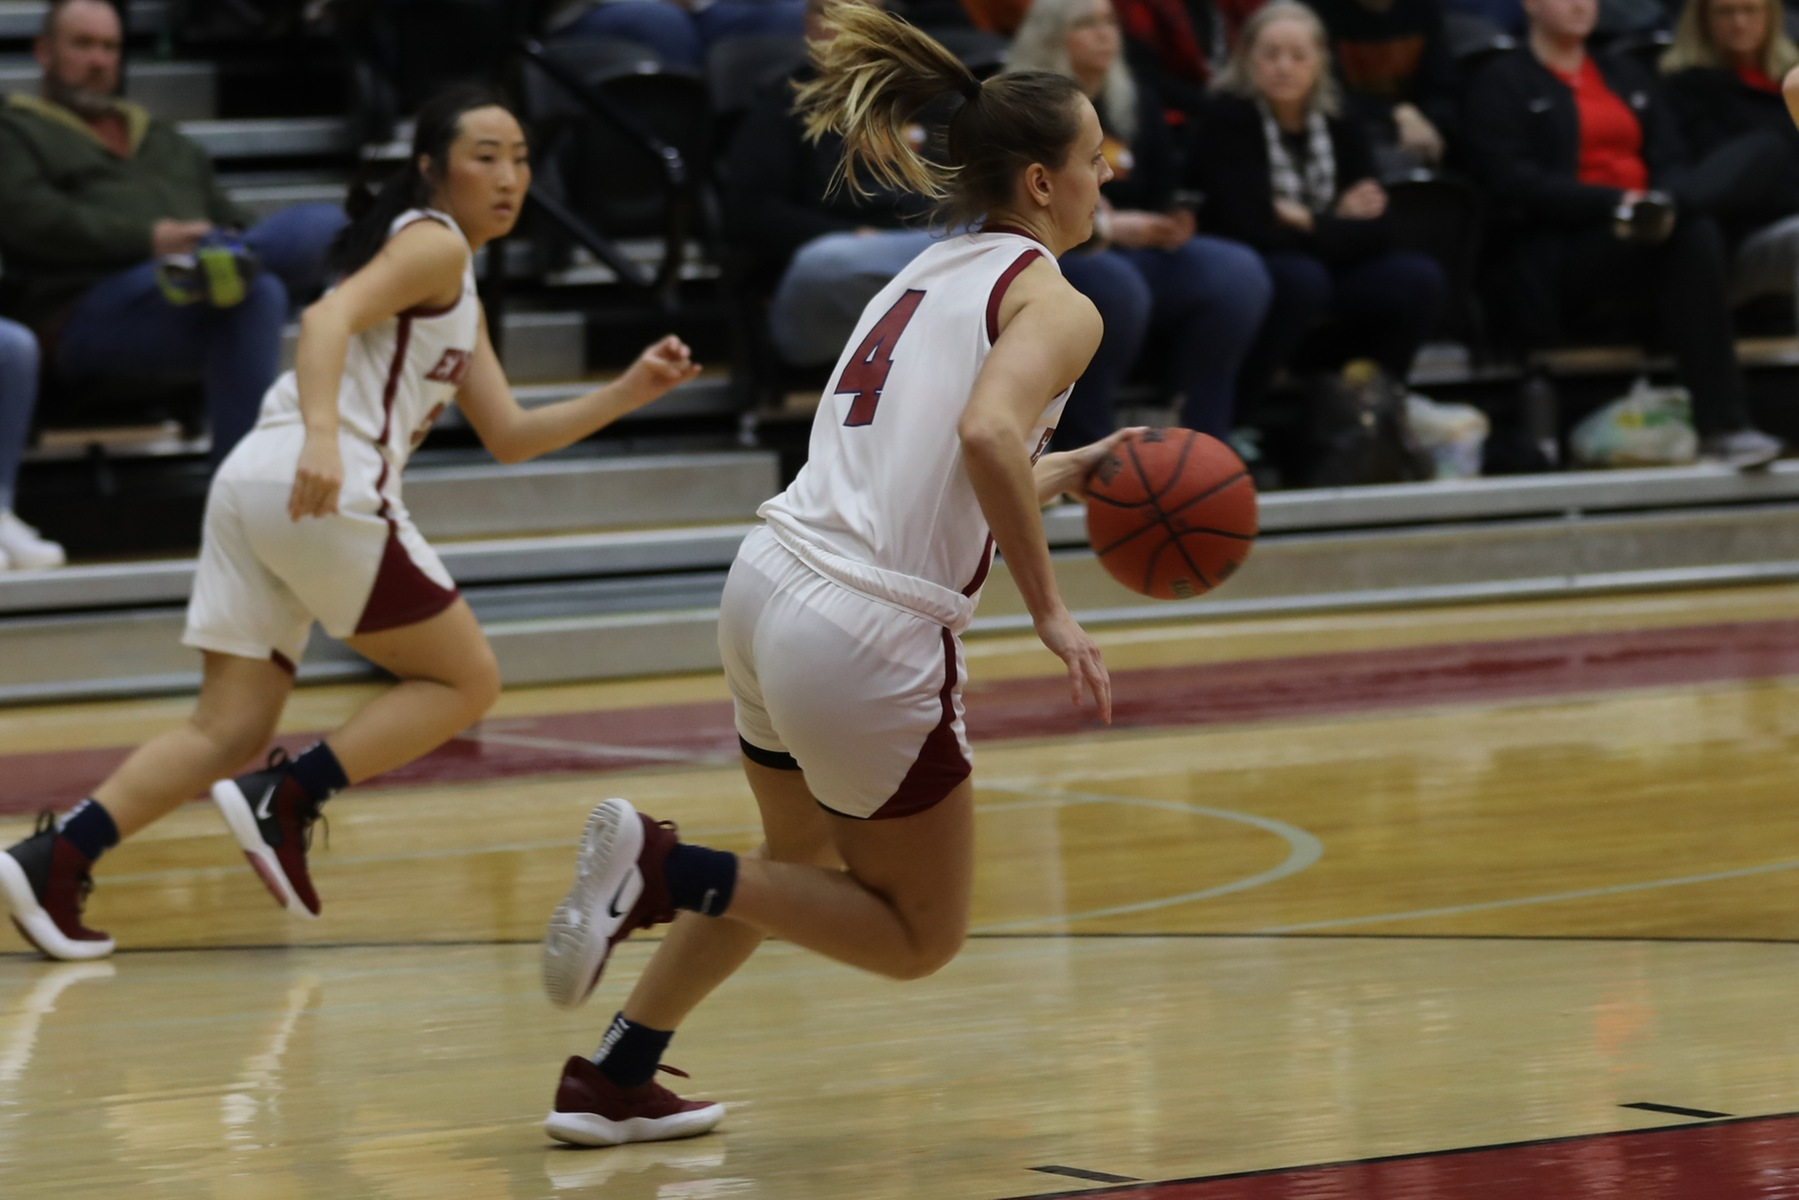 Lions Down SWU, 66-47